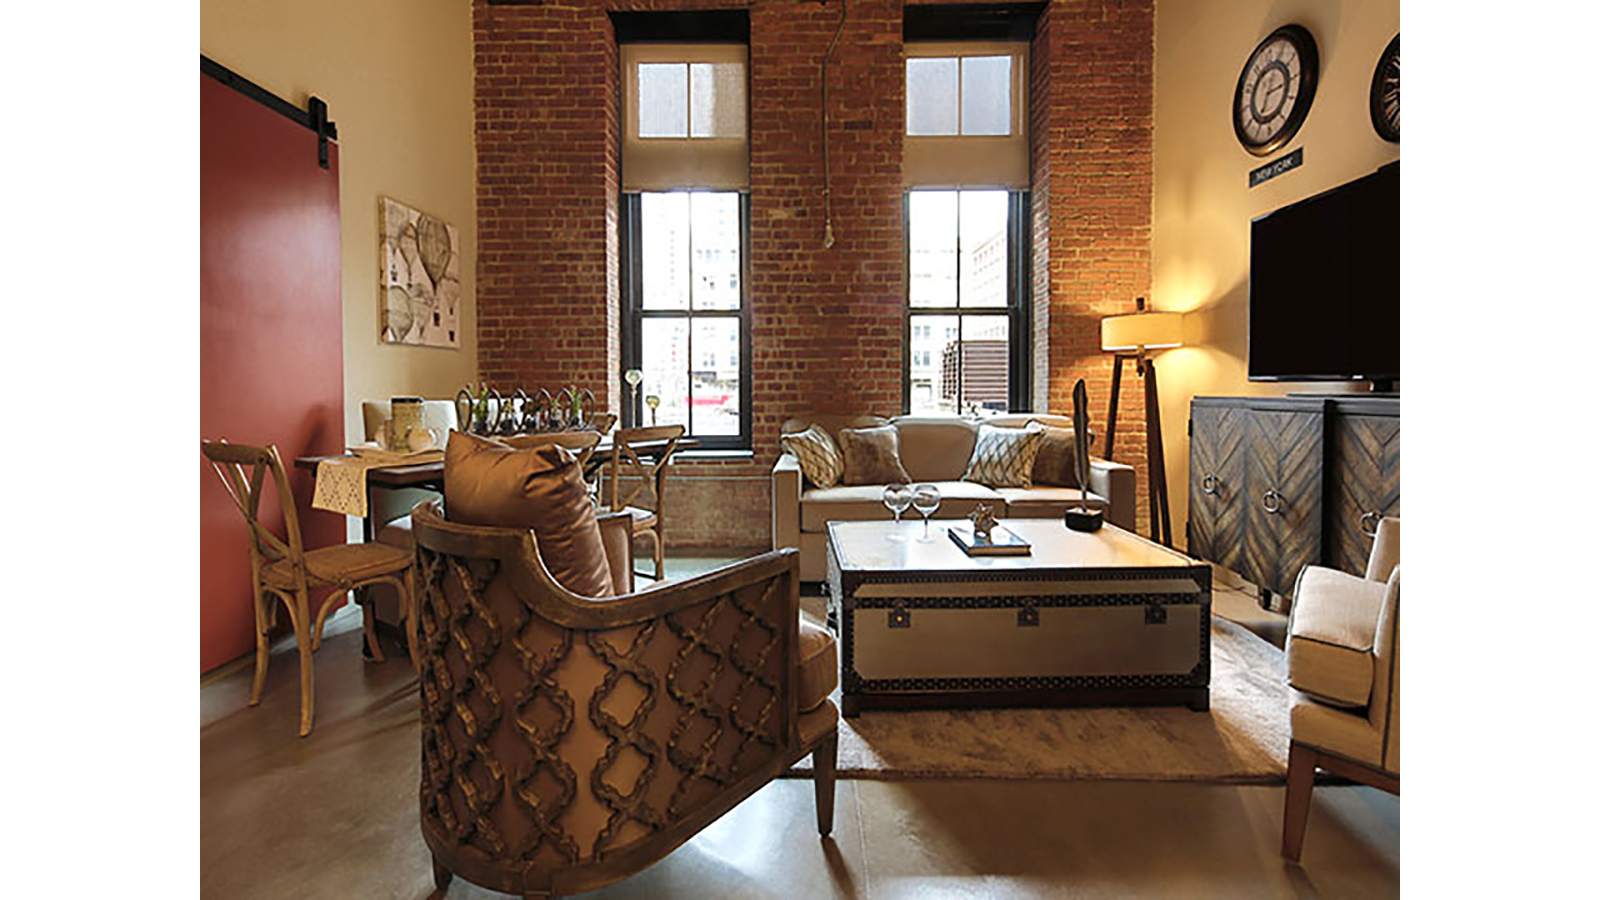 Modera Lofts 350 Warren Street Nyc Rental Apartments